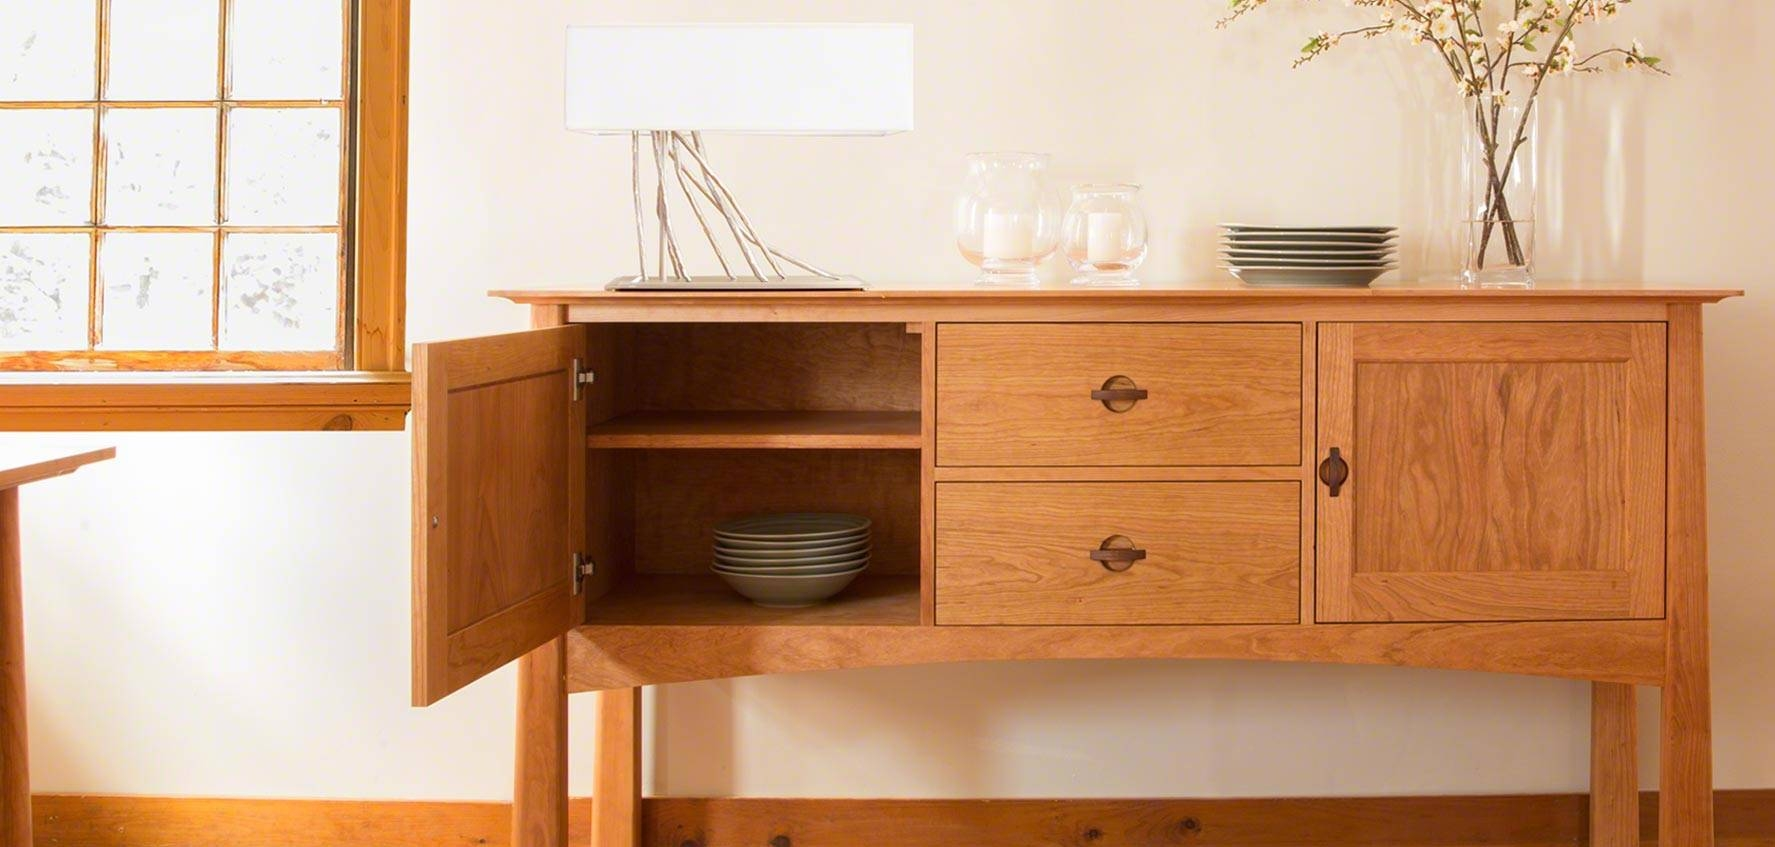 Solid Wood Sideboards, Buffets, & Hutches – Vermont Woods Studios With Regard To Desk Sideboards (#15 of 15)